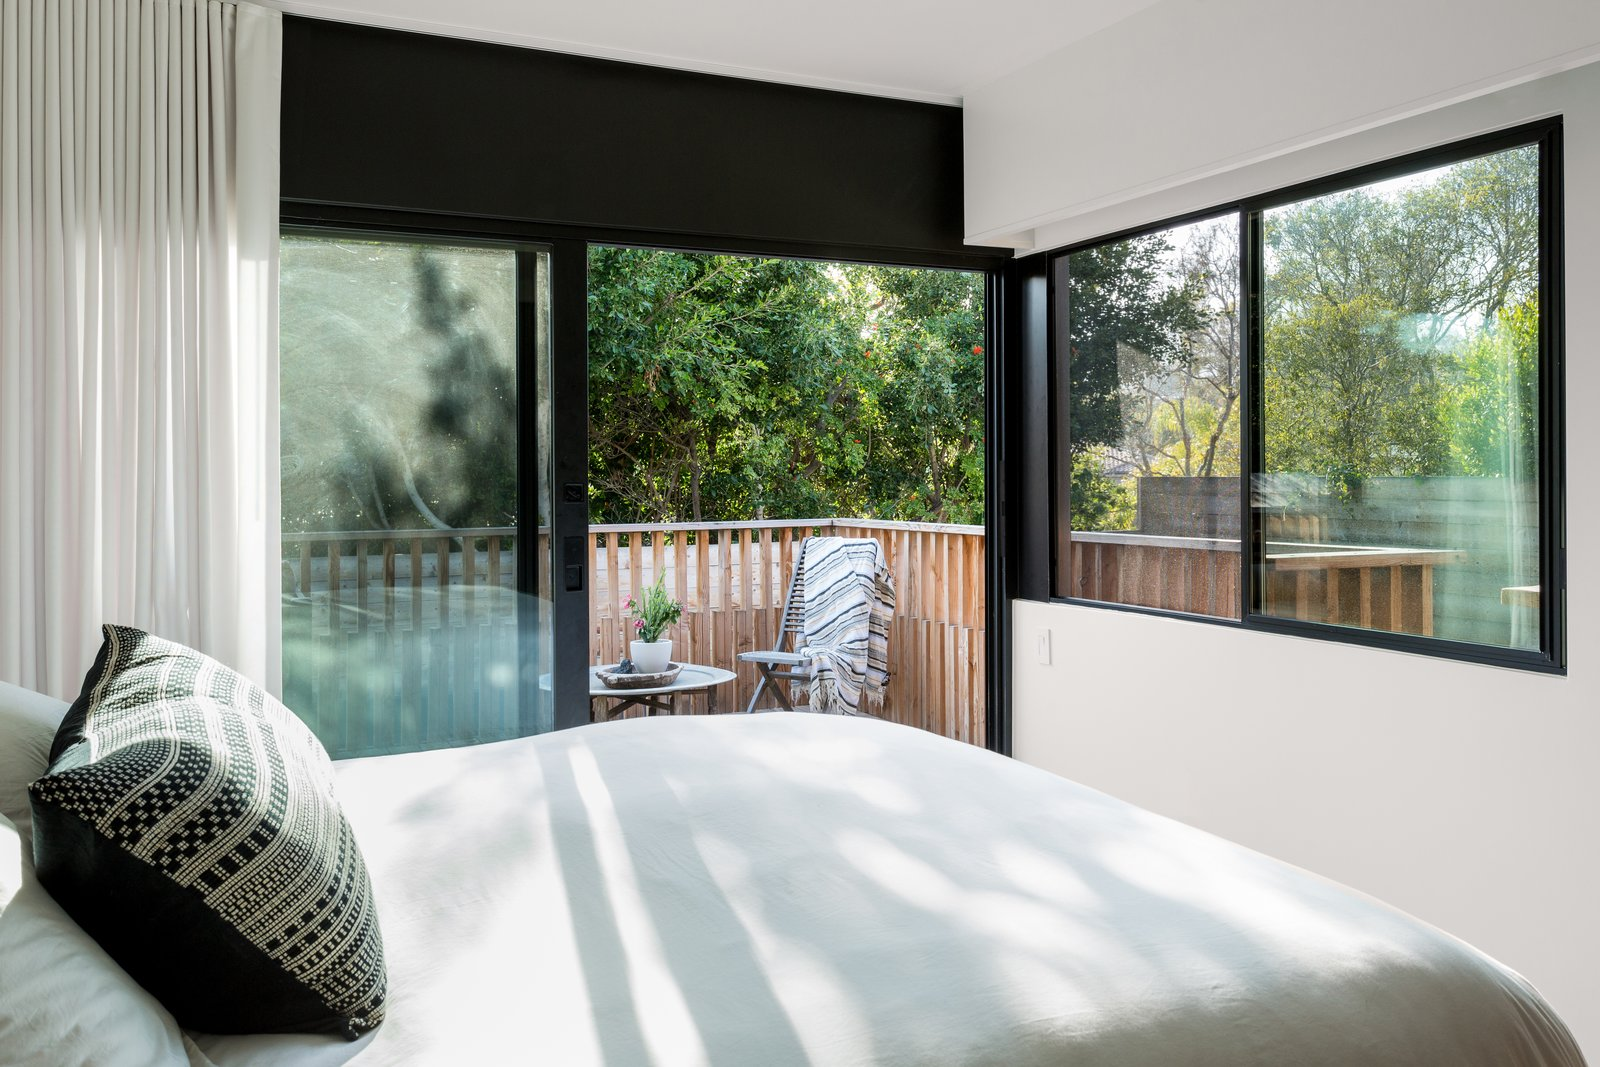 Bedroom and Bed  Photo 9 of 12 in The Woman Who Grew Up in This L.A. Home Returned to Give it a Stunning Renovation